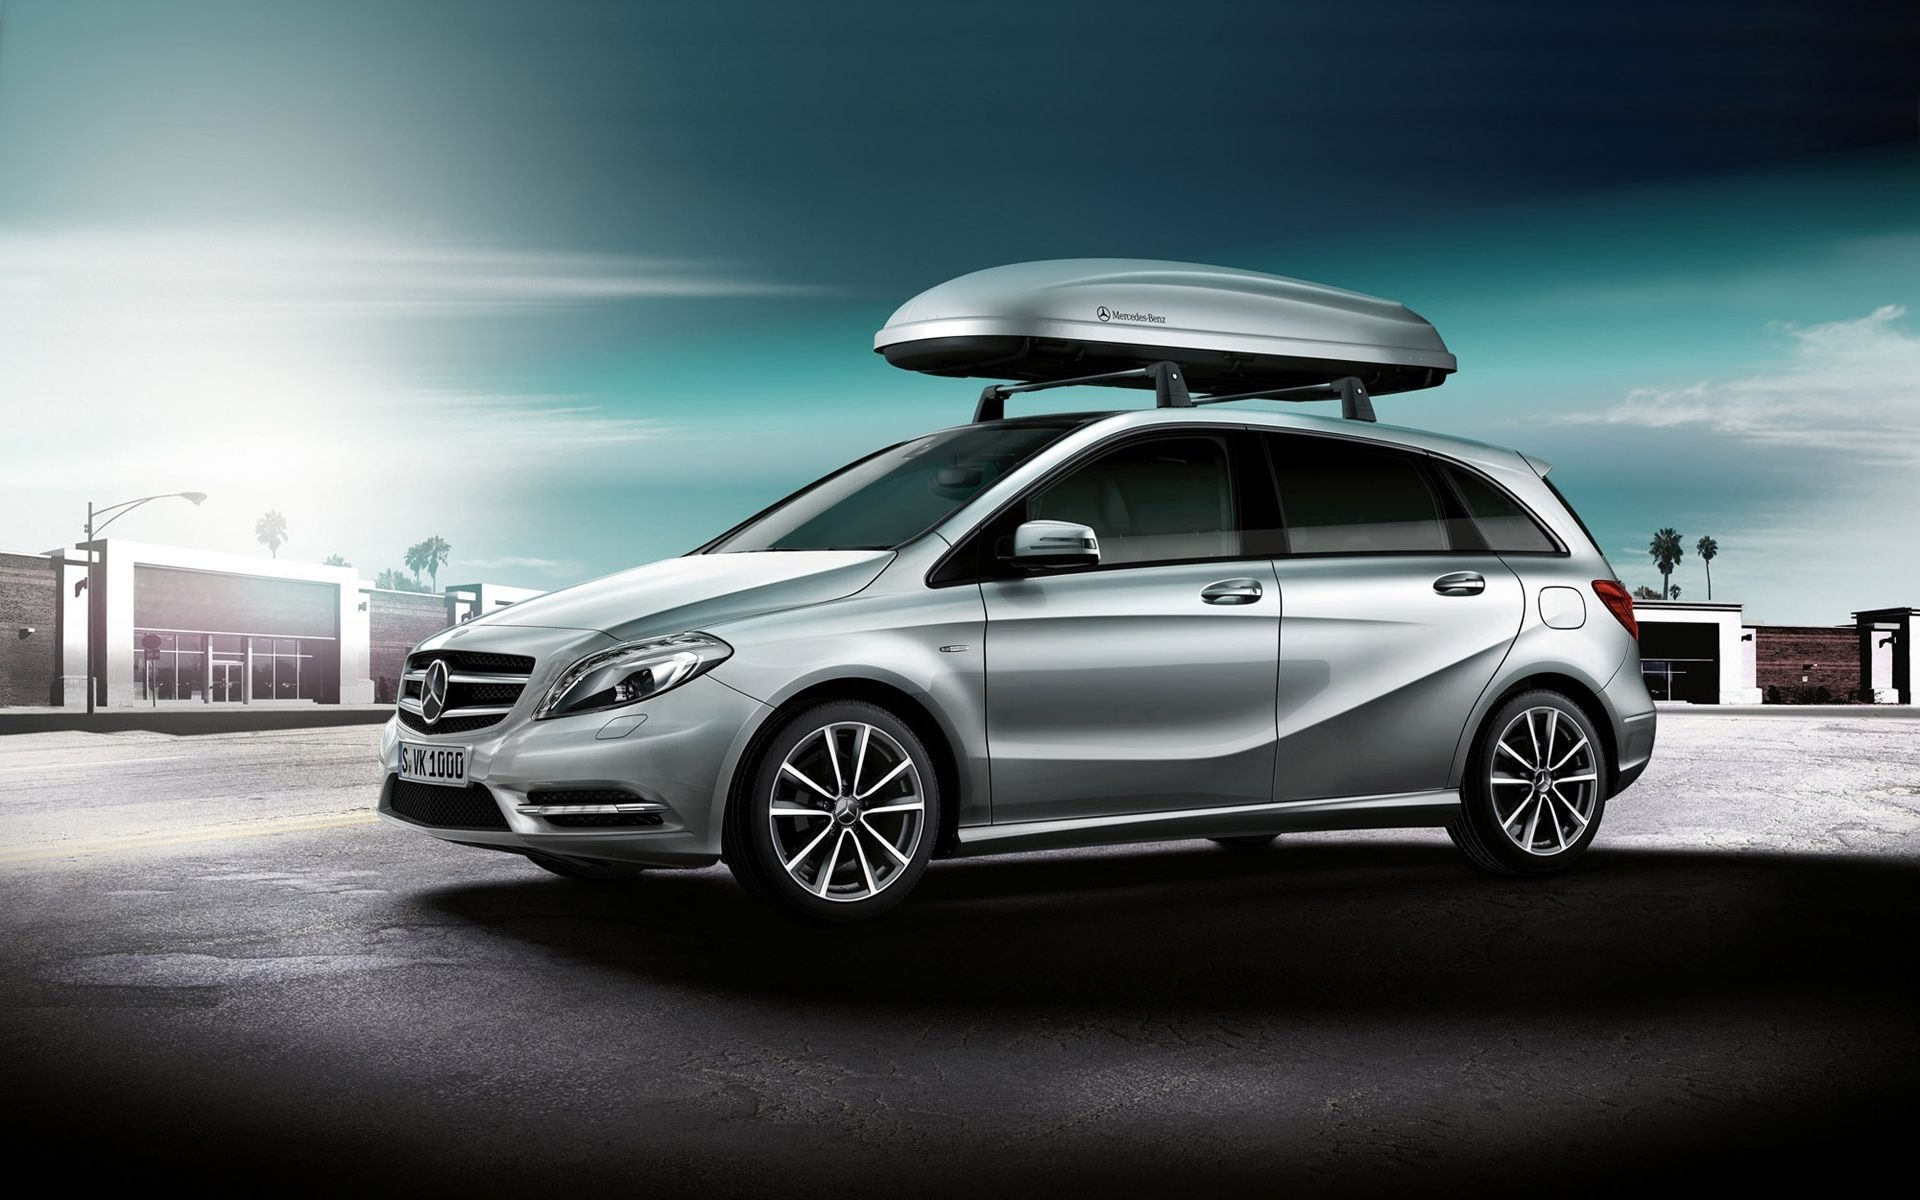 SUV-mercedes_telecharger_voitures-de-reve_super-cars_4